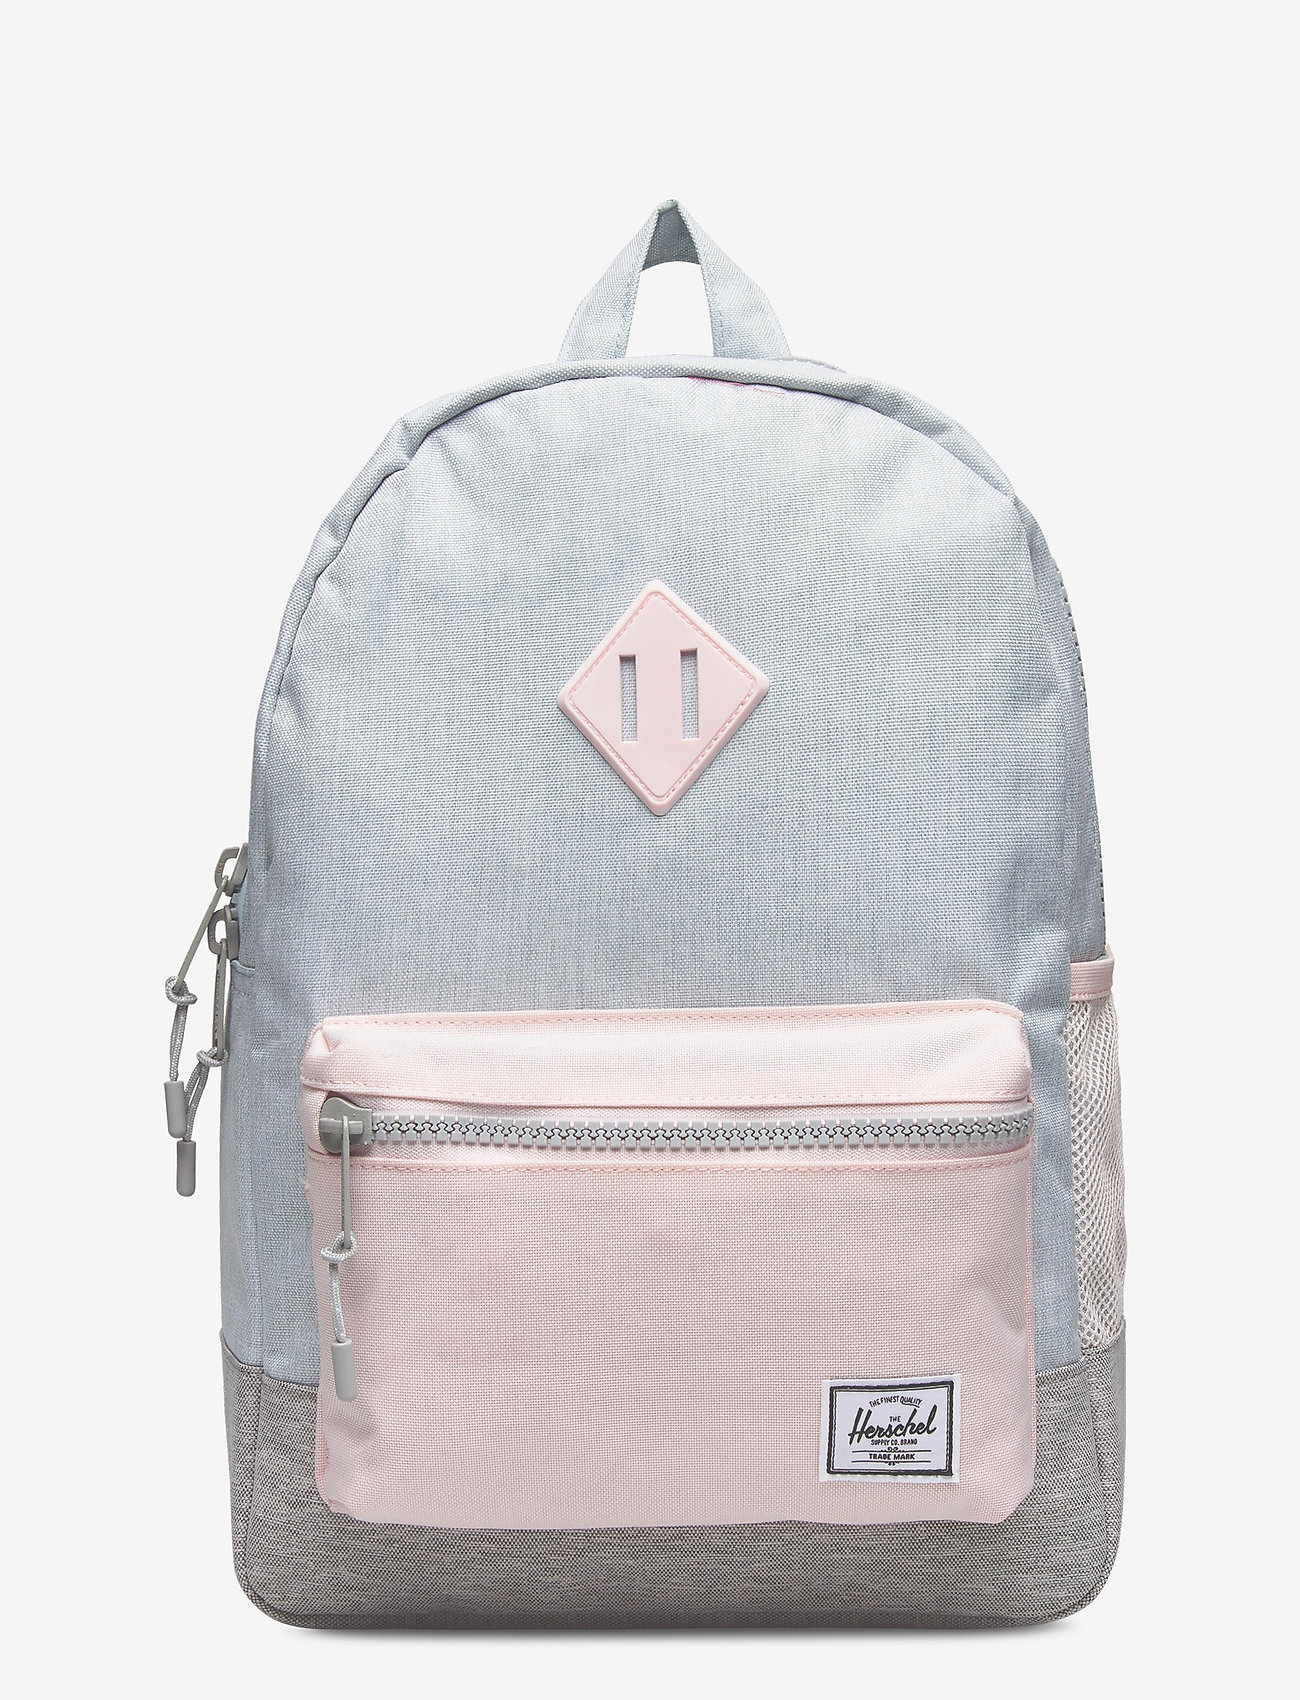 Herschel - Heritage Youth-Ballad Blue Pastel Crosshatch/Rosew - reput - ballad blue pastel crosshatch/